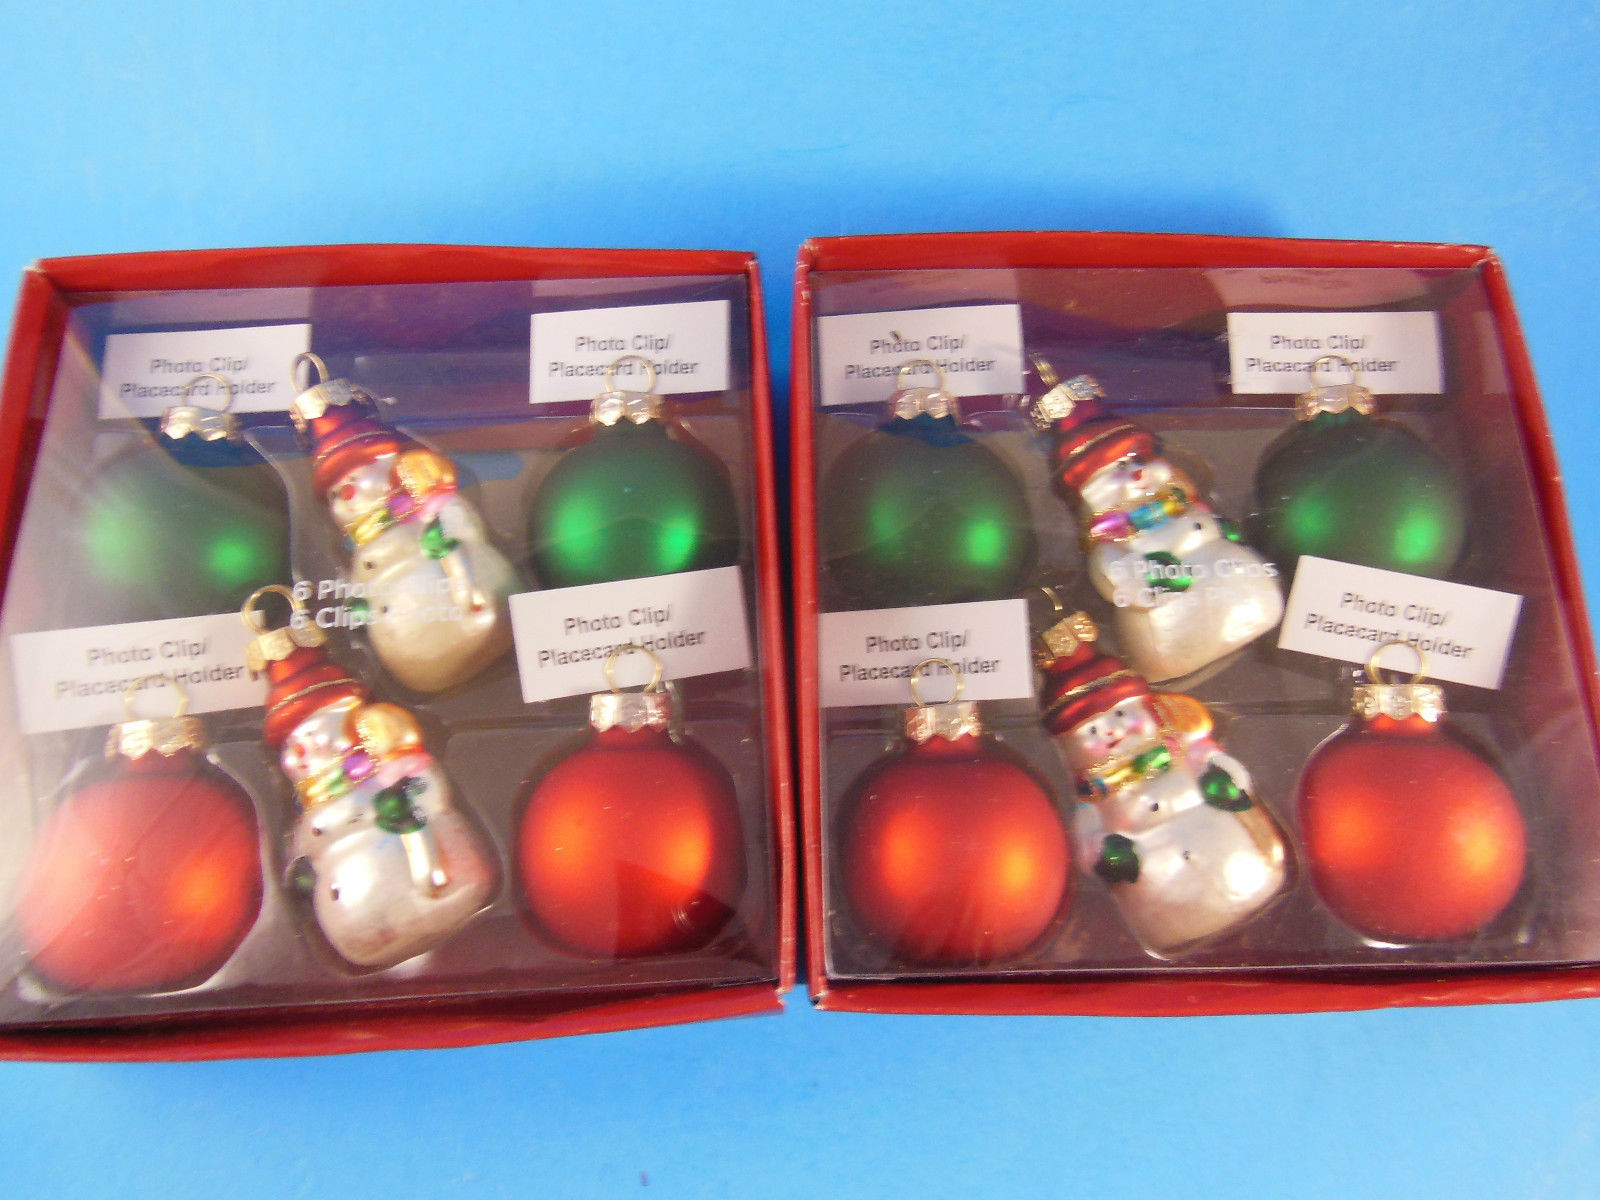 12 Christmas Photo or Place Card Holders Snowmen & Christmas Balls NIB Michaels - $25.98